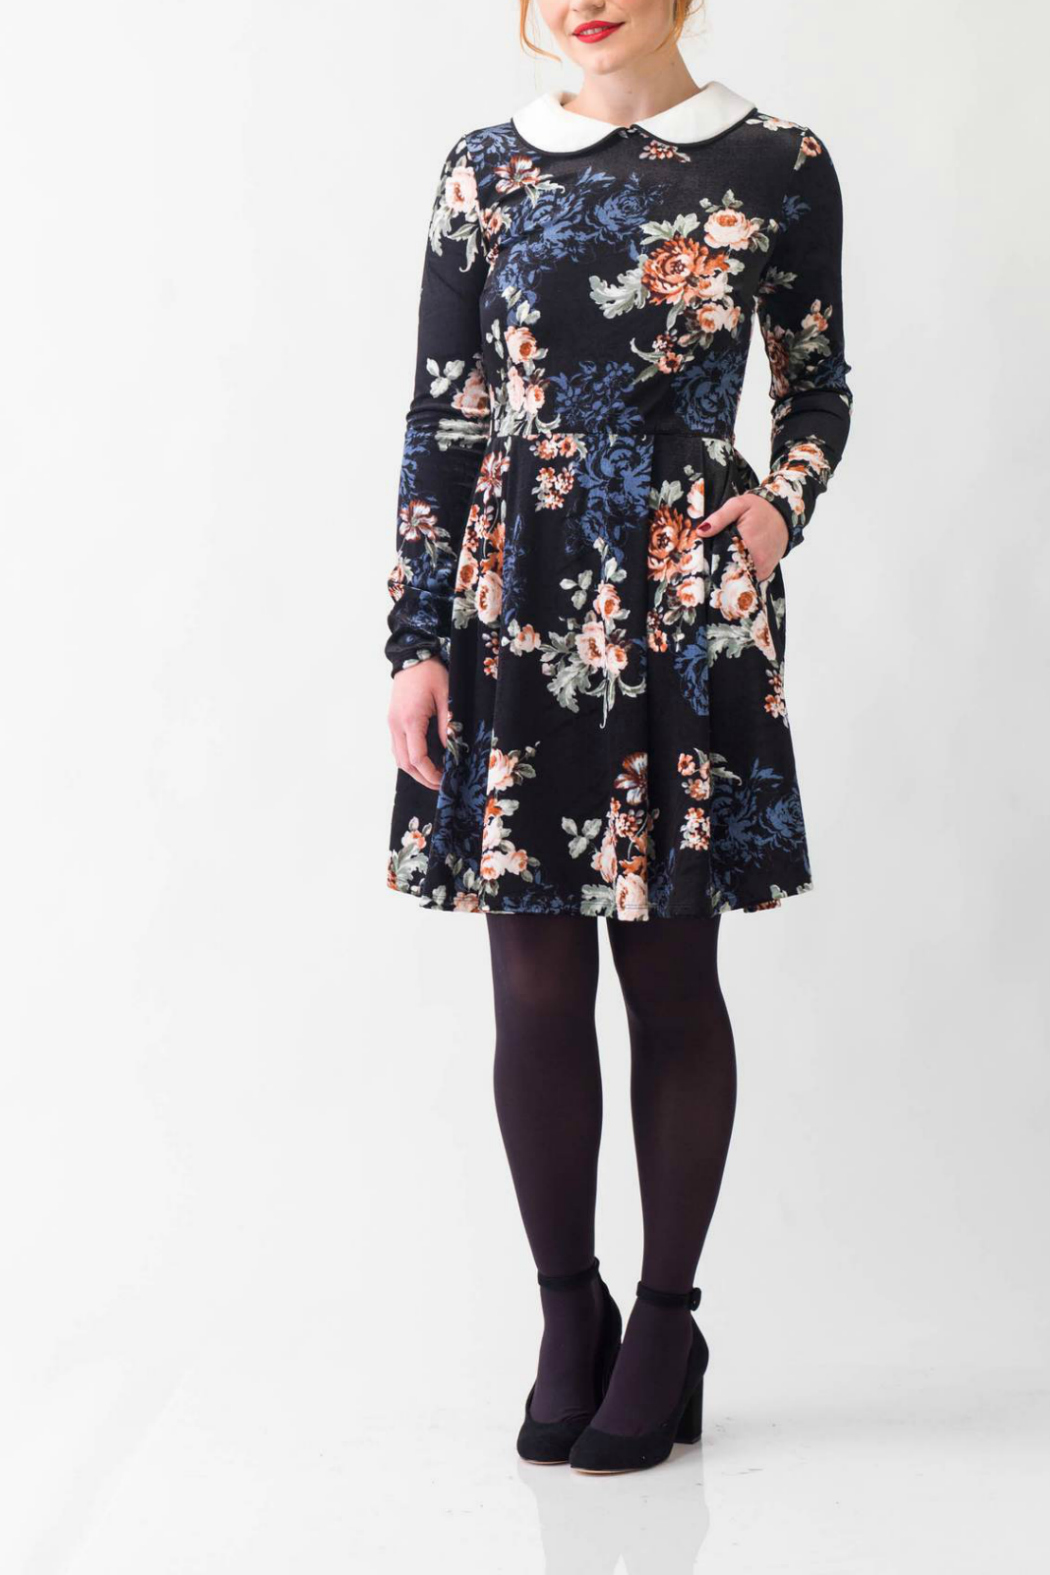 Smak Parlour Jet Set Floral Print Flare Dress - Main Image